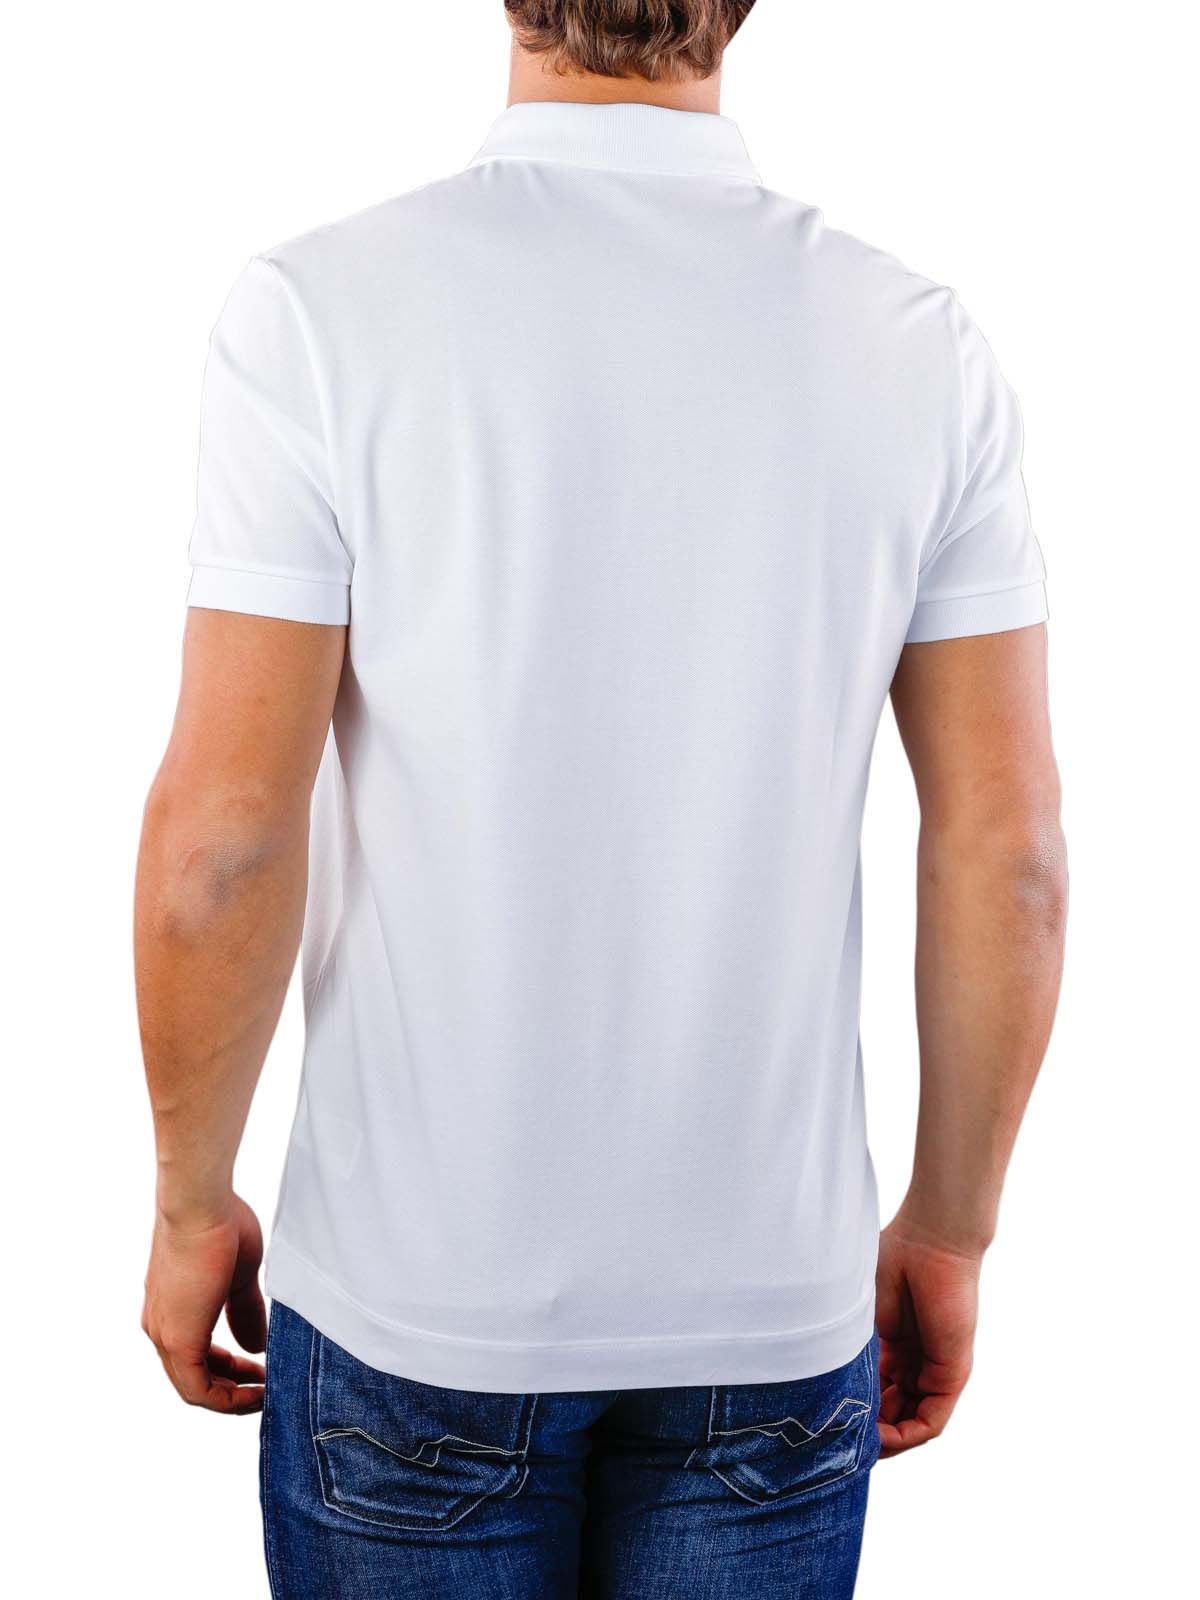 finest selection 8fdf0 921f0 Lacoste Polo Shirt Stretch blanc